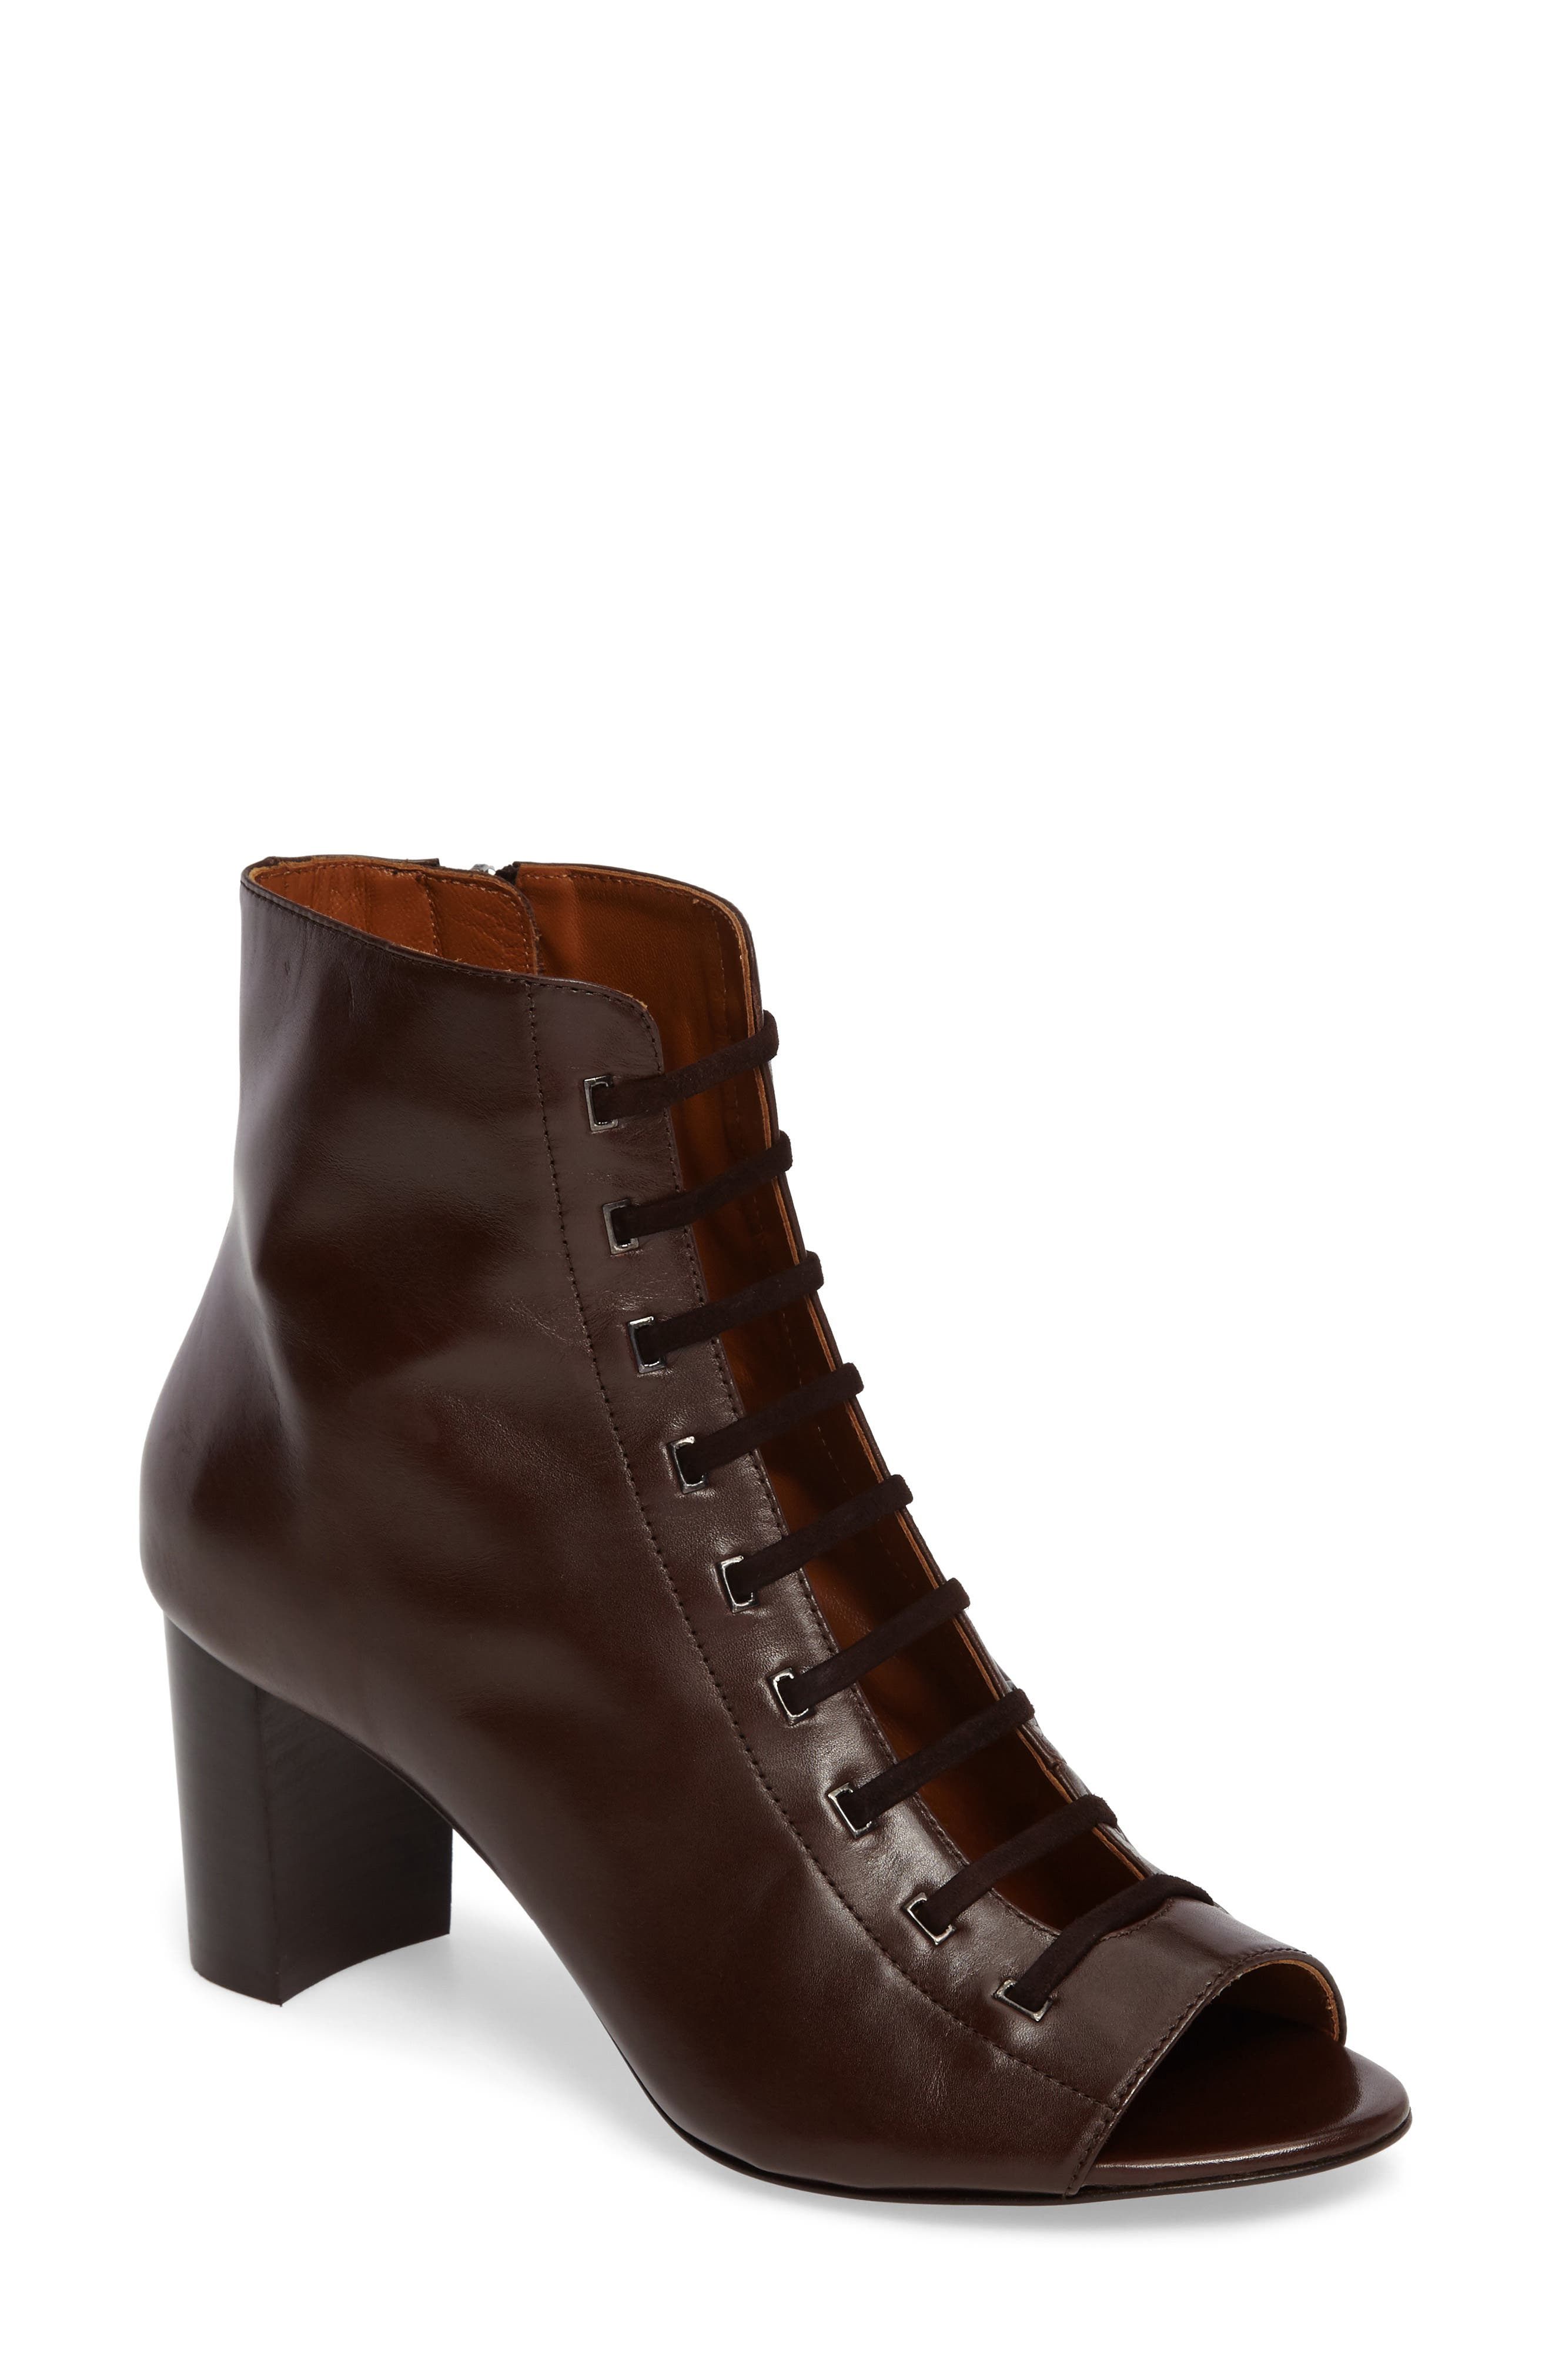 Alternate Image 1 Selected - Aquatalia Stefania Weatherproof Open Toe Bootie (Women)